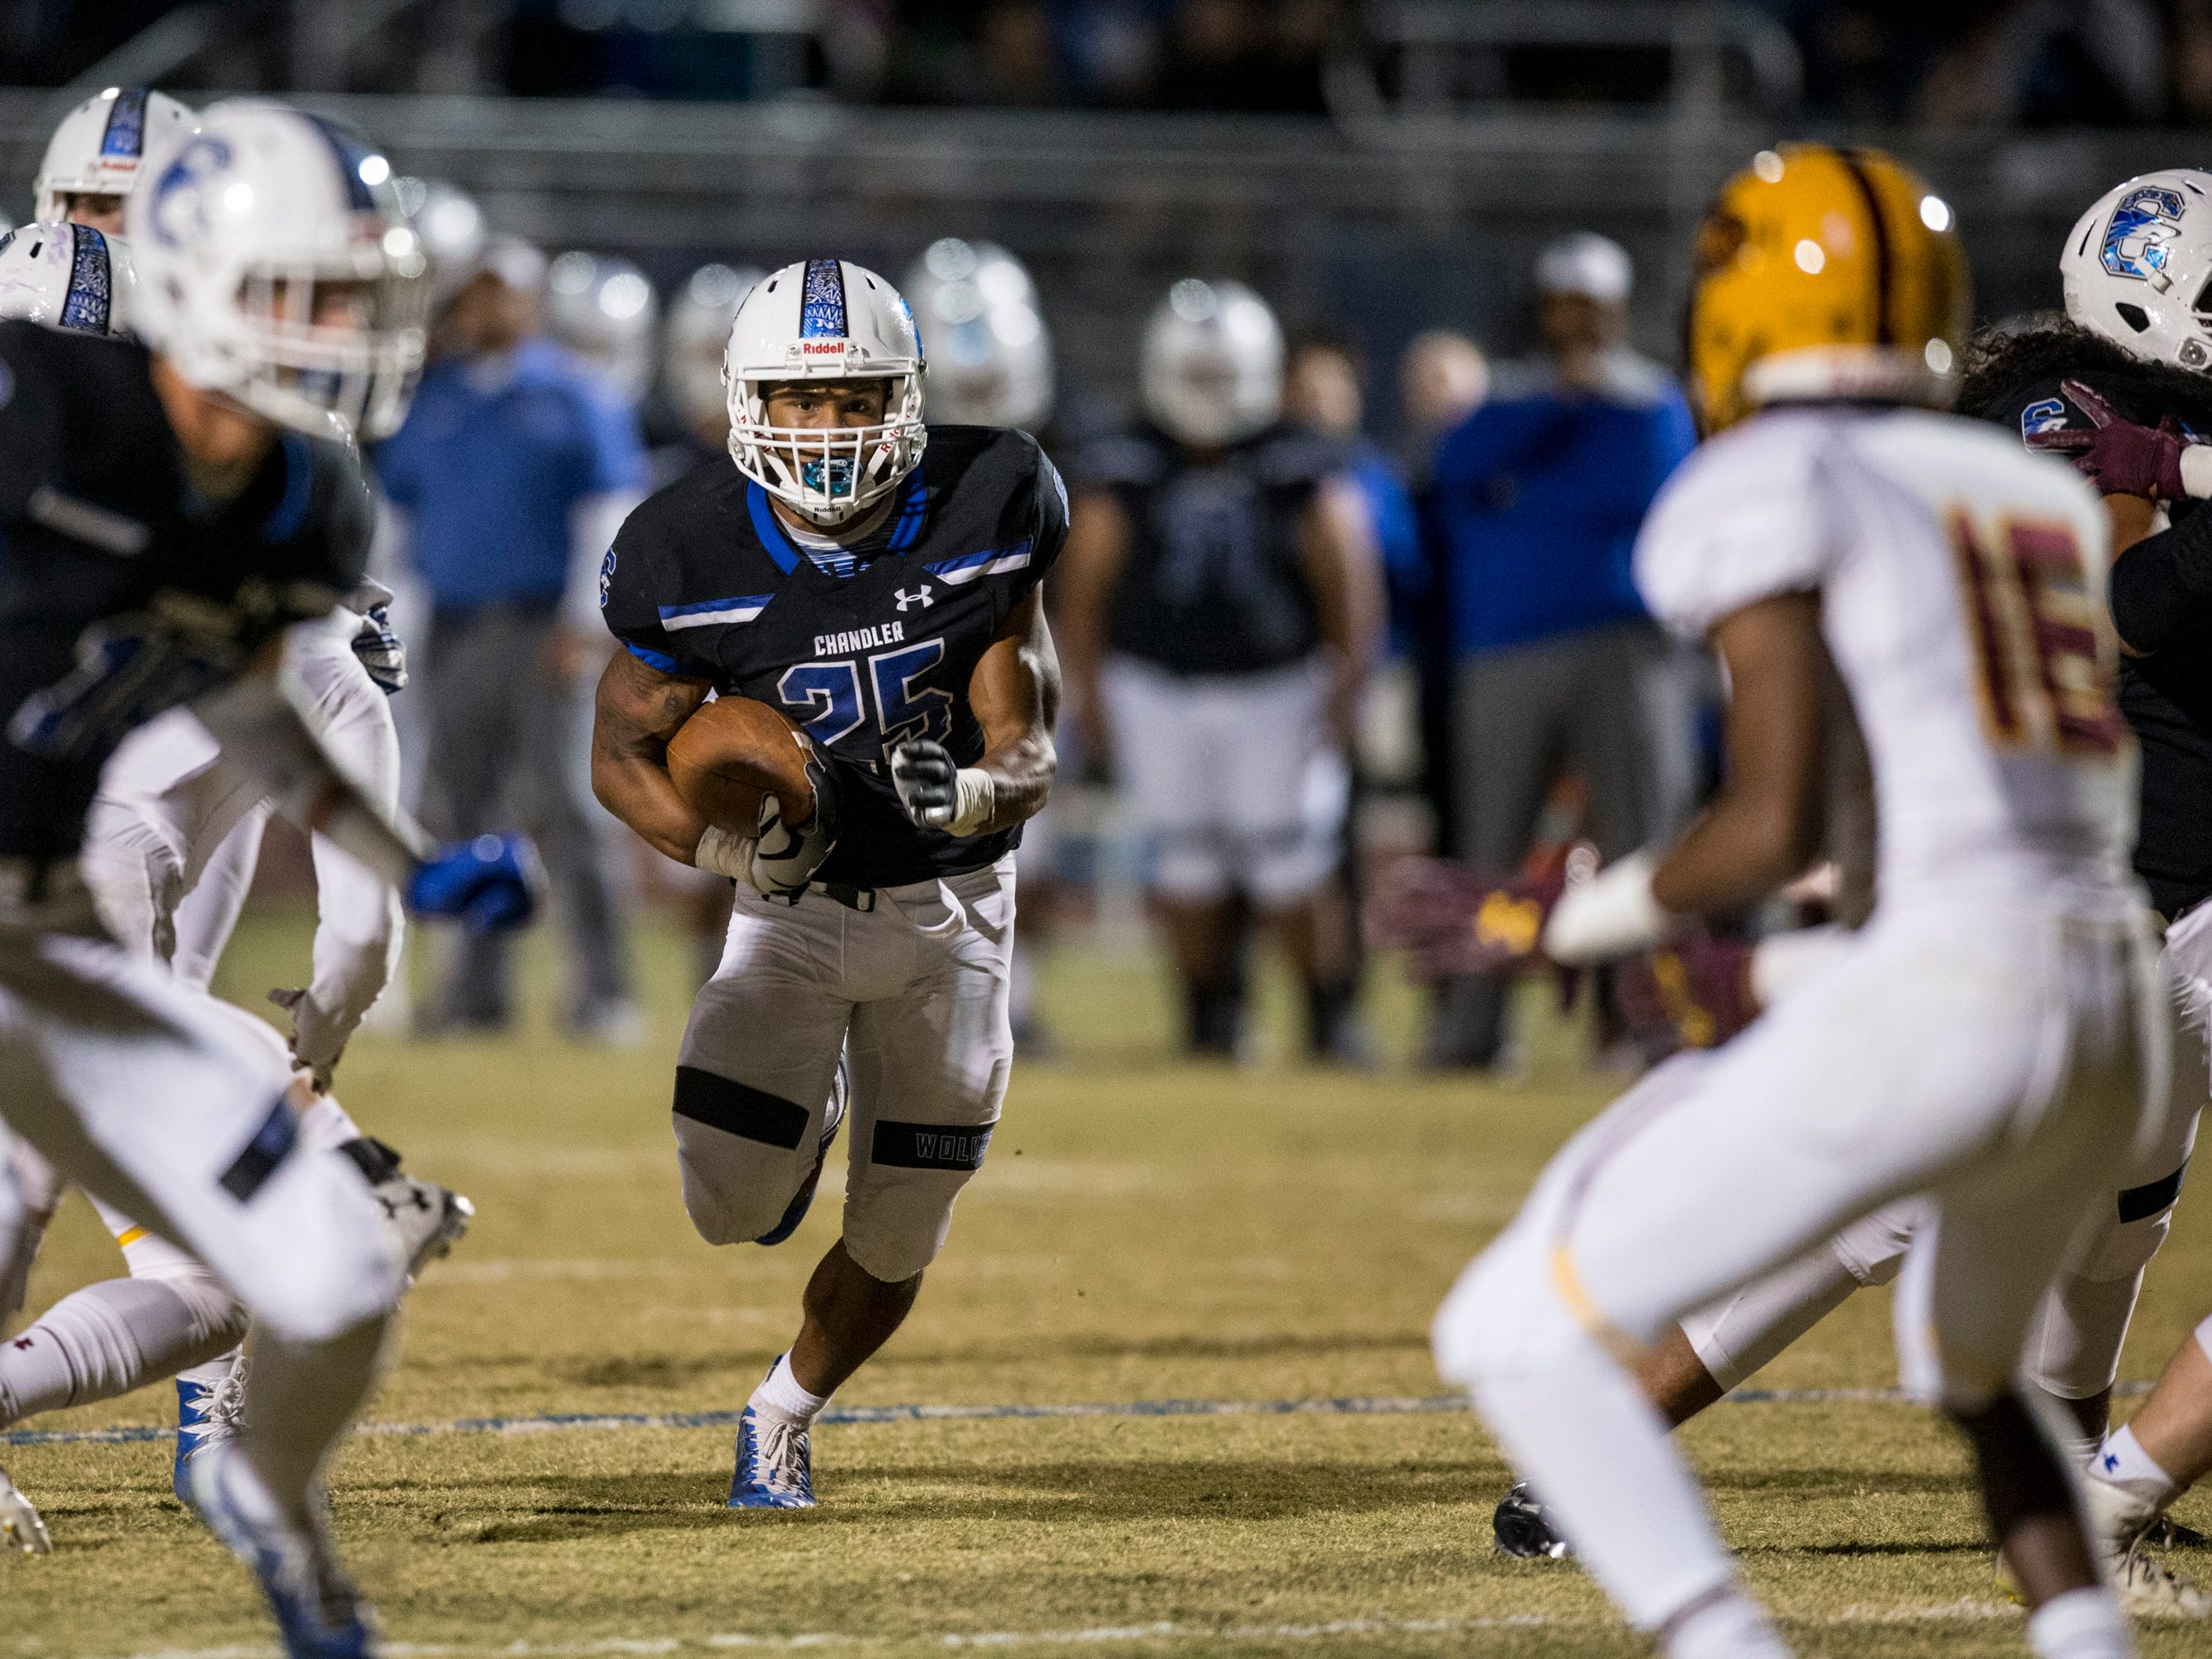 Chandler's Decarlos Brooks rushes against Mountain Pointe in the first half on Friday, Nov. 9, 2018, at Chandler High School in Chandler, Ariz.